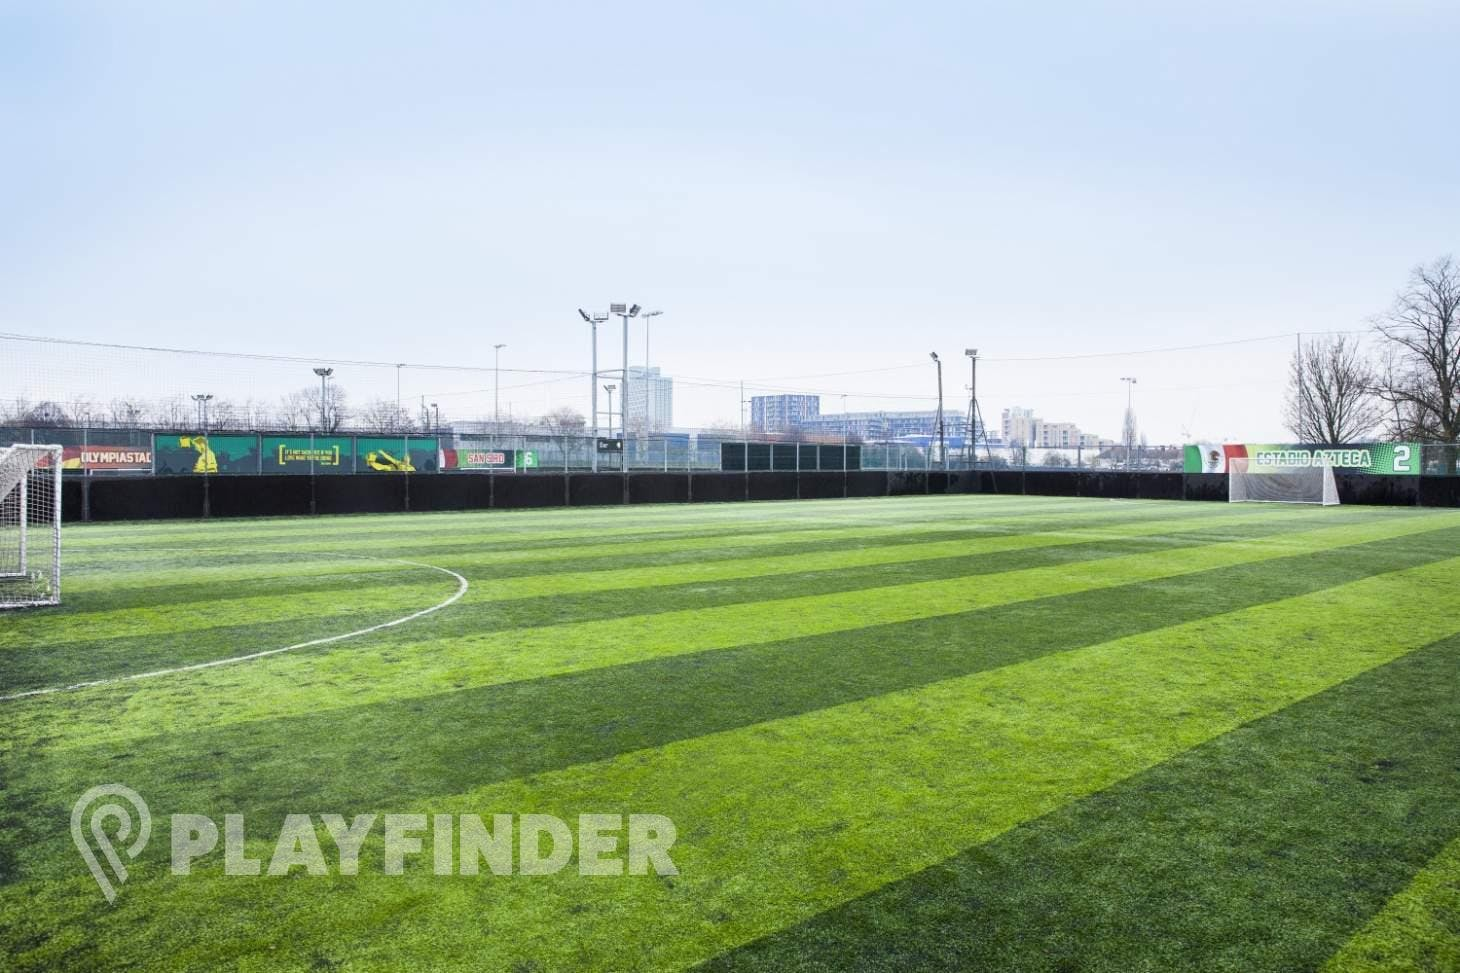 Goals Wembley 7 a side | 3G Astroturf football pitch